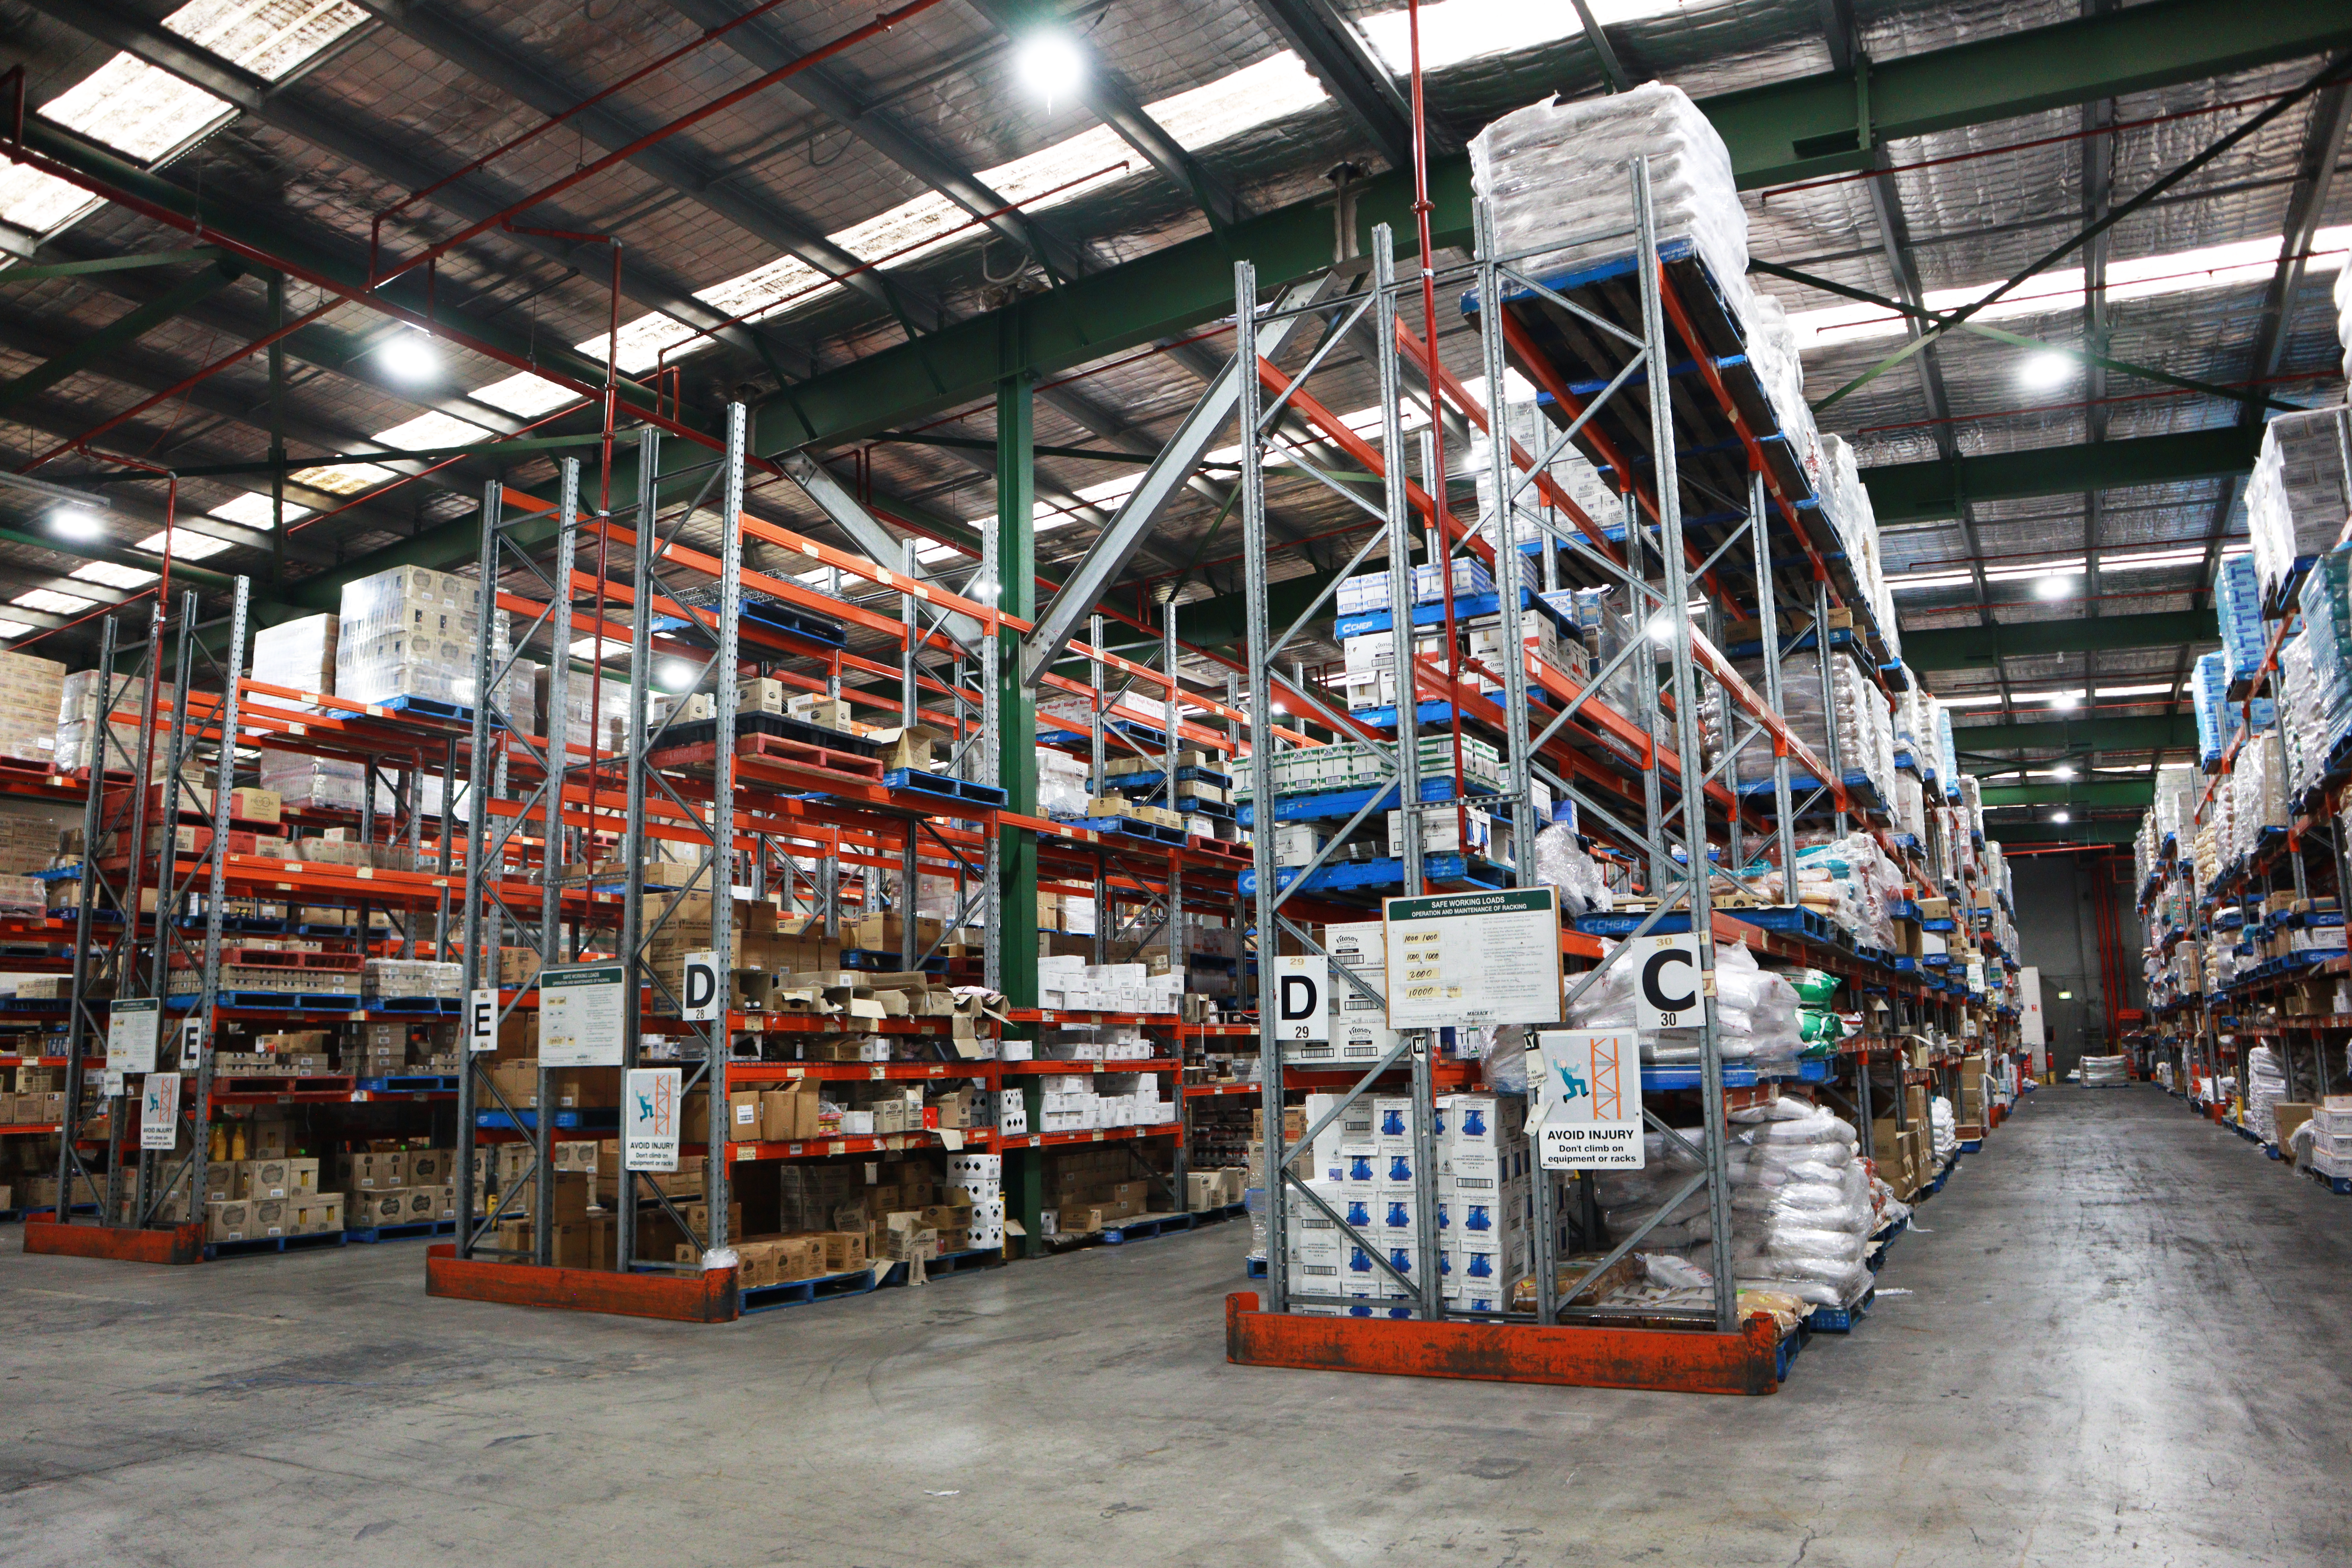 FoodByUs Supplier, FoodLink has a huge warehouse, able to stock thousands of products across a range of categories.